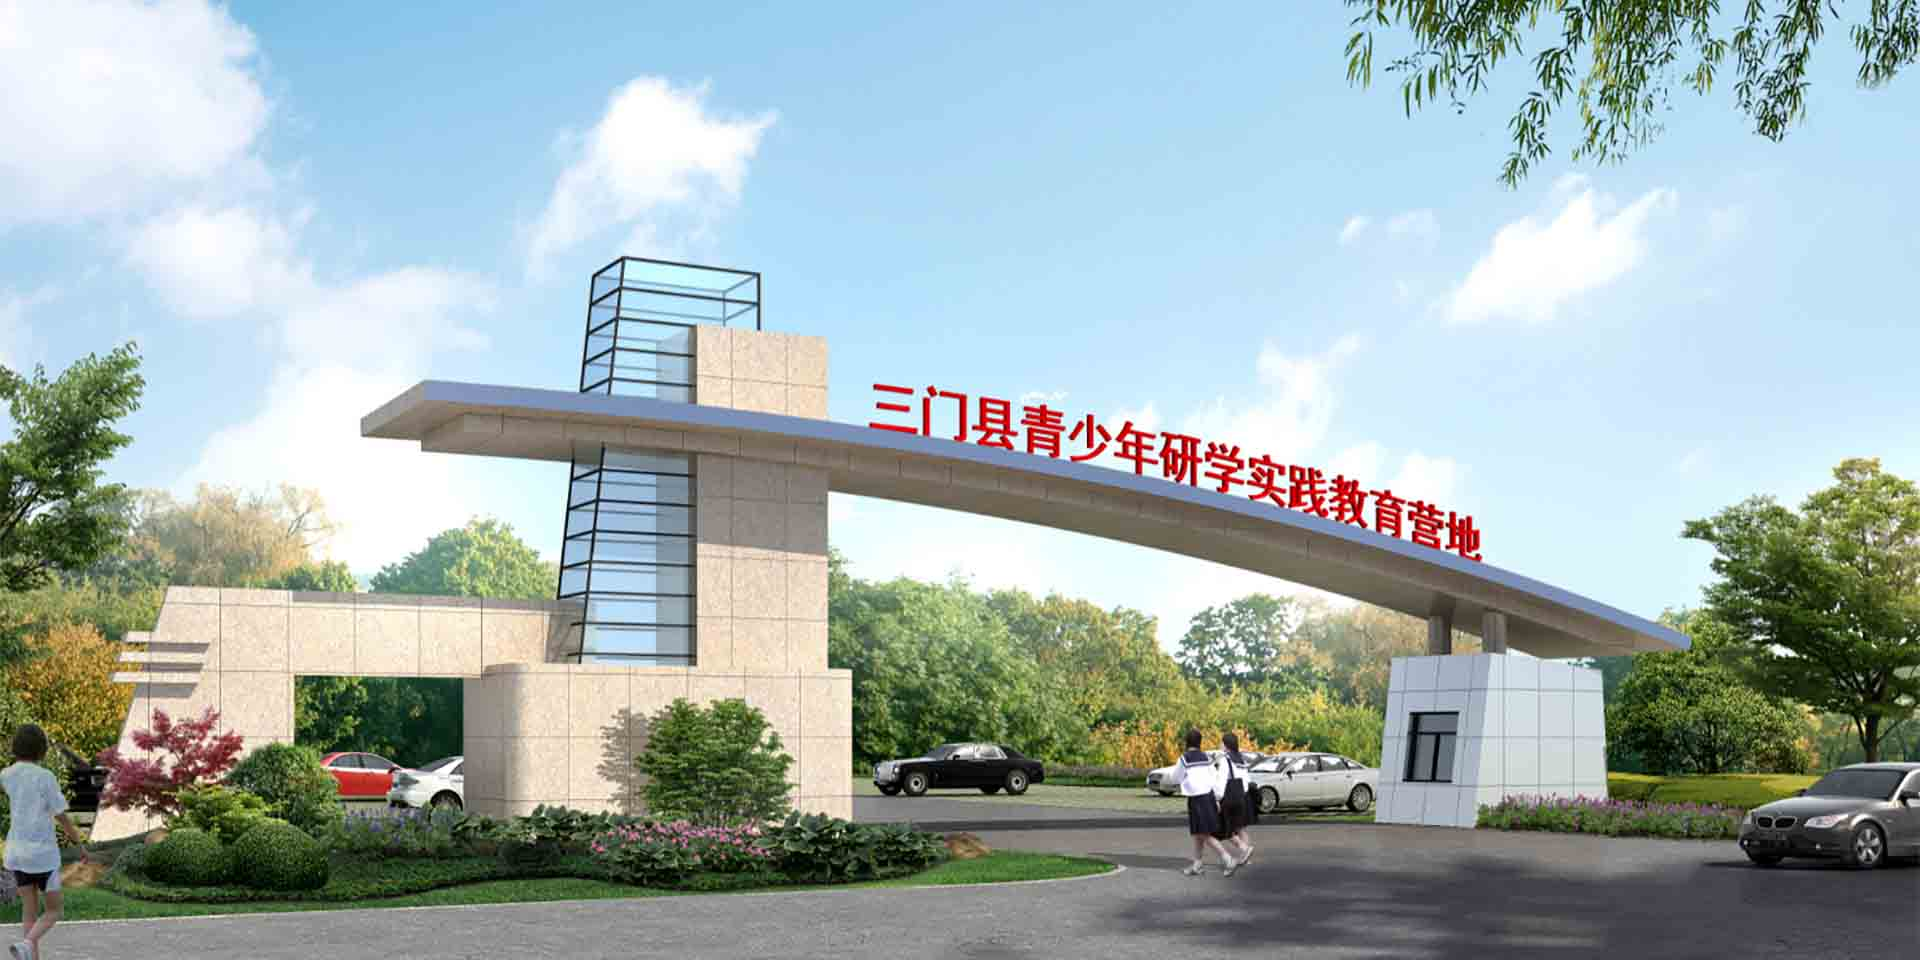 Planning of Red Cultural Research Camp Beside Sanmen County Pavilion